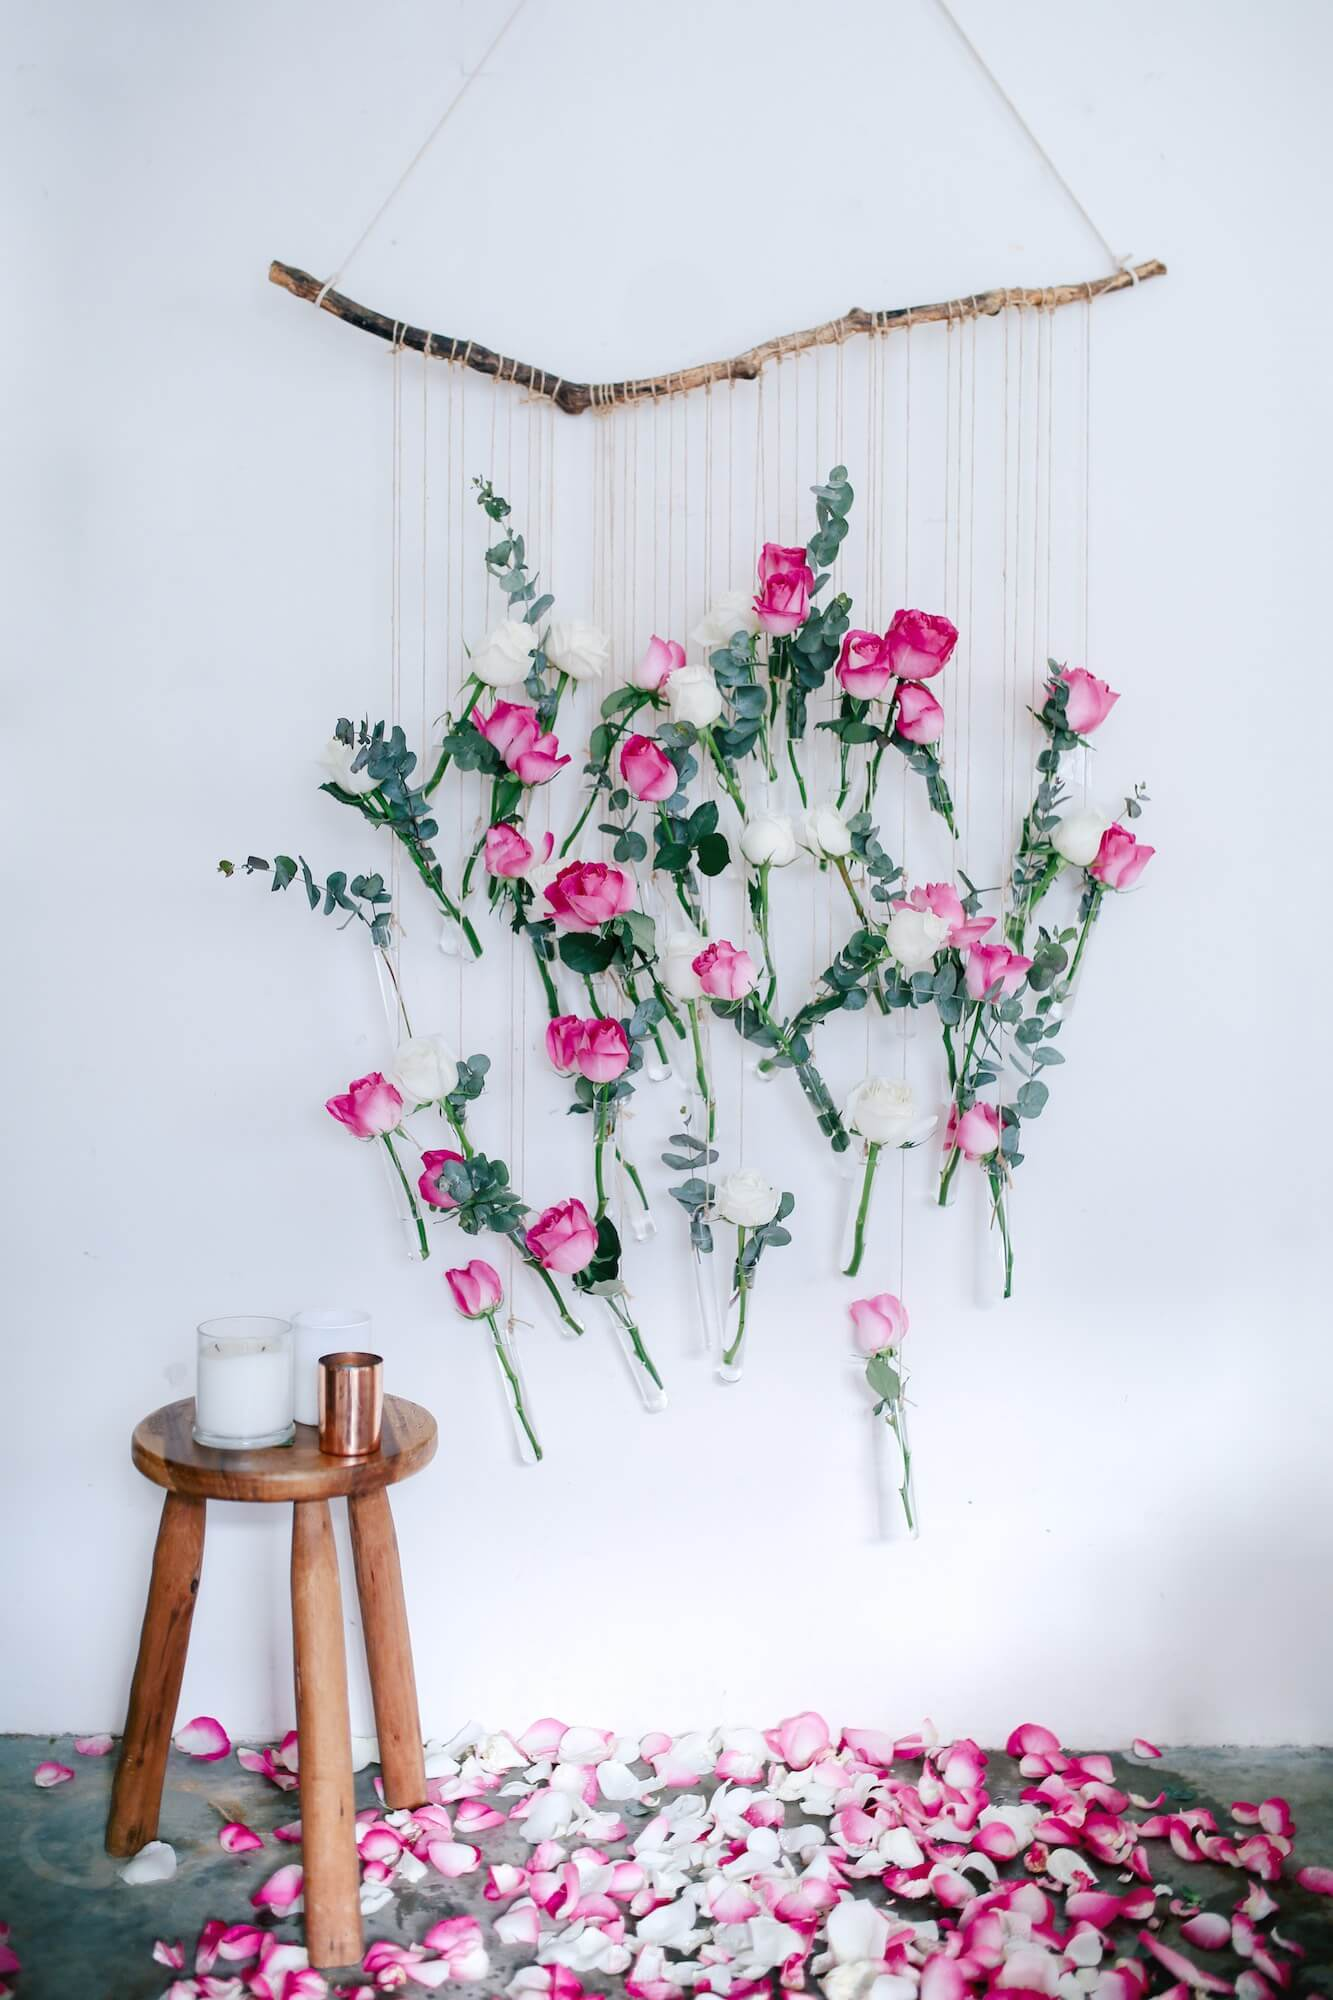 Hanging Wall Decor Ideas 37 Best Diy Wall Hanging Ideas And Designs For 2019